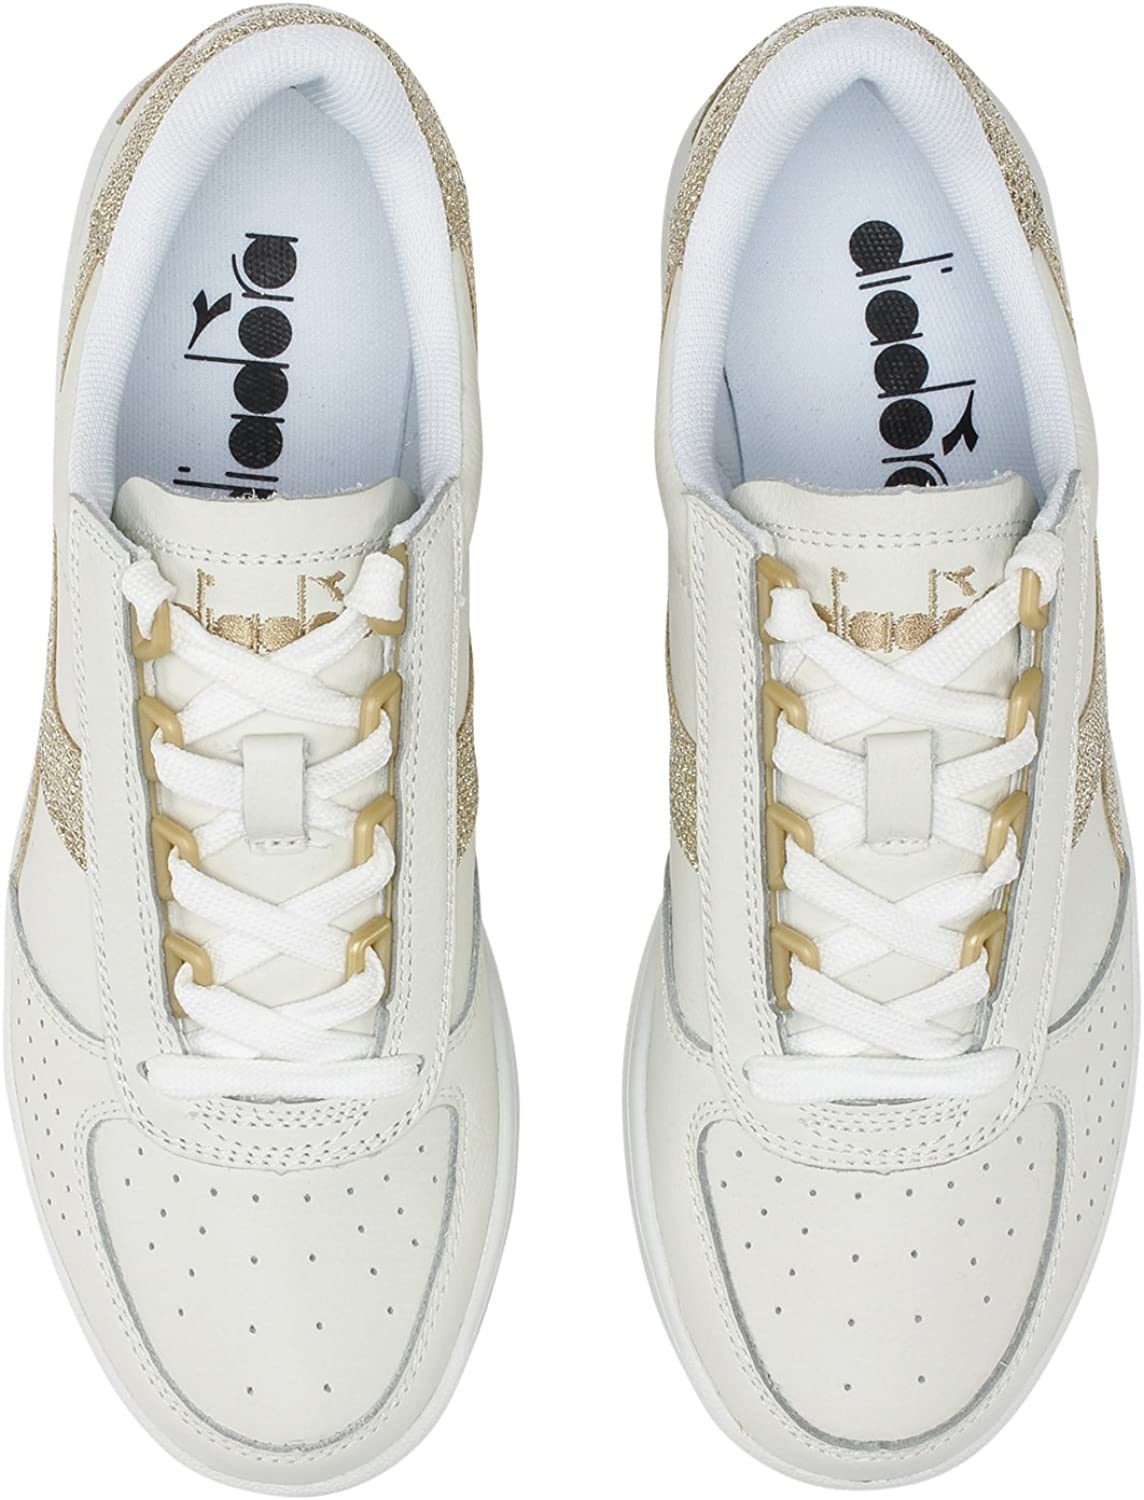 Diadora - Sneakers B.ELITE L METALLIC WN pour femme C1070 Or Blanc